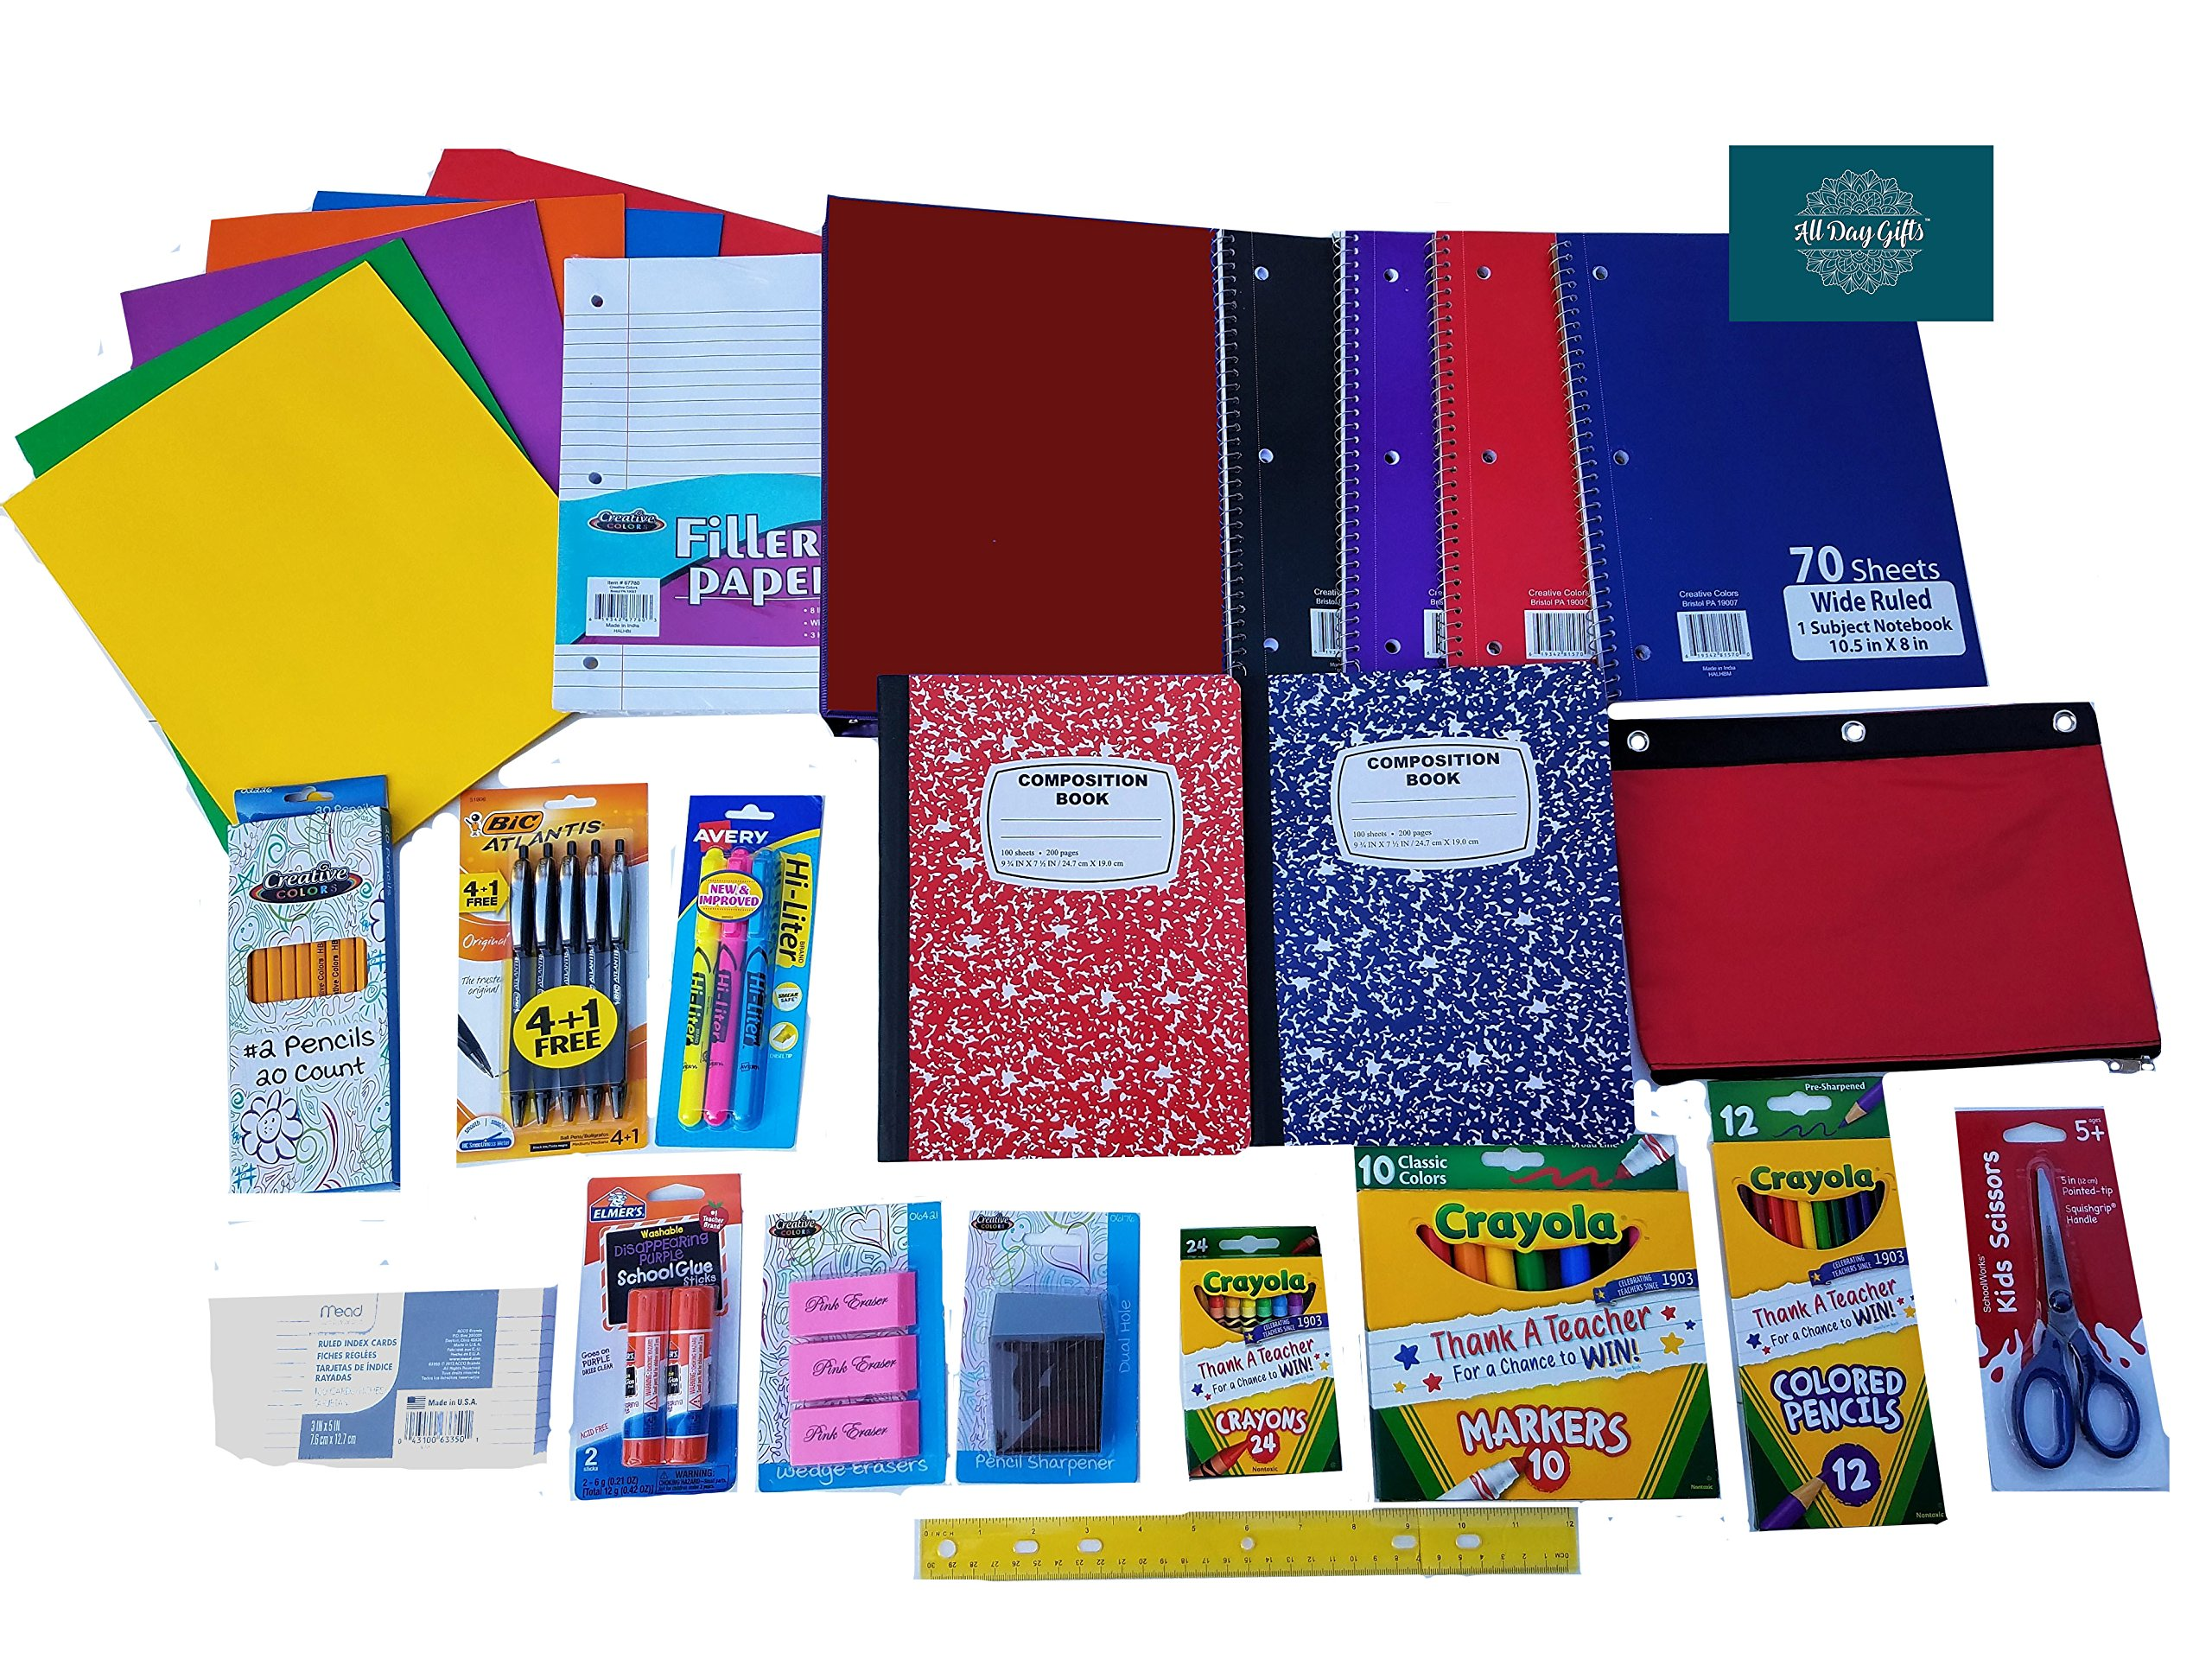 Over 50 Count School Supply Bundle For Elementary 3rd 4th 5th Grade Students By ALL DAY GIFTS-Binder,Pens,Pencils,Crayola Markers-Crayons,Folders,Note Books,Scissors,Erasers,Glue +More (Wide Ruled #4)